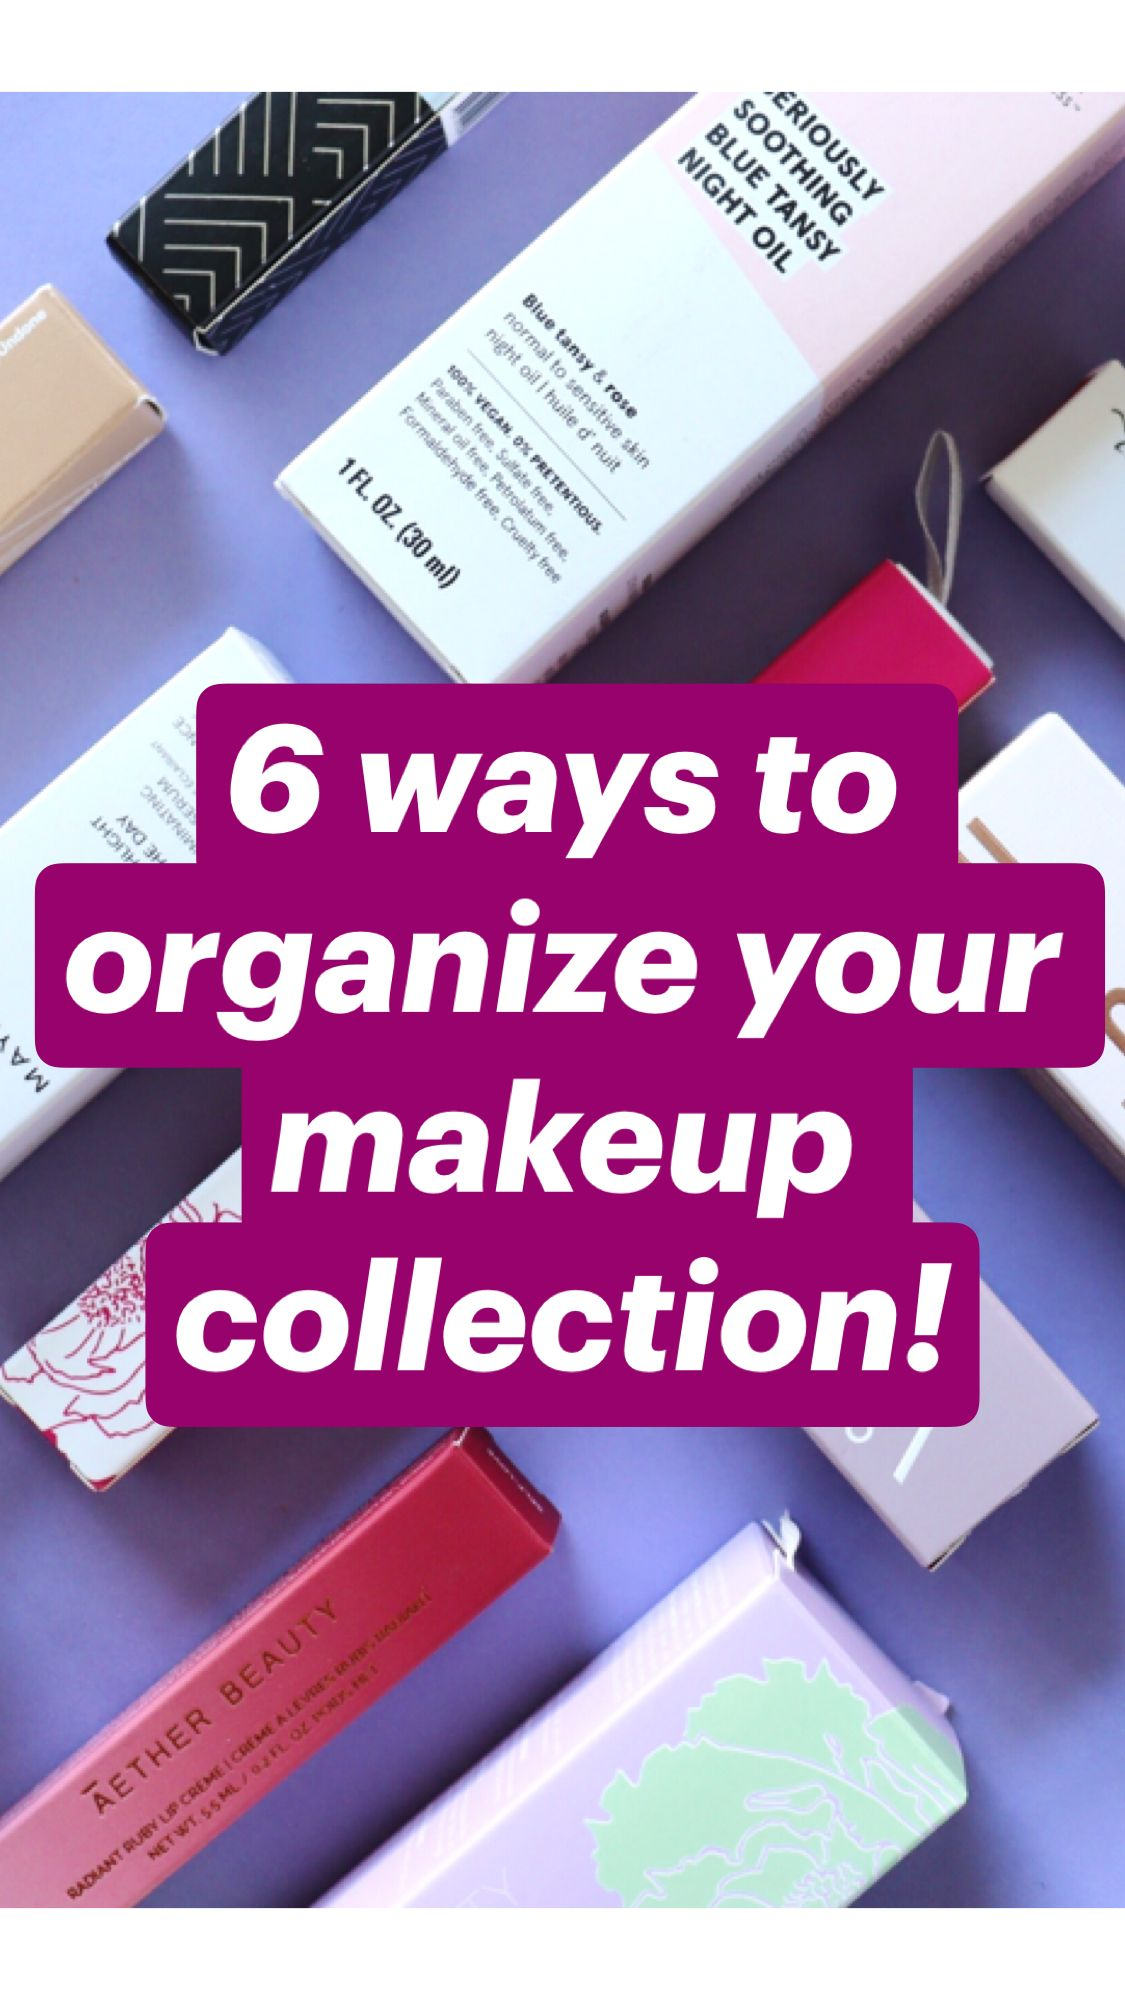 6 ways to organize your makeup collection!